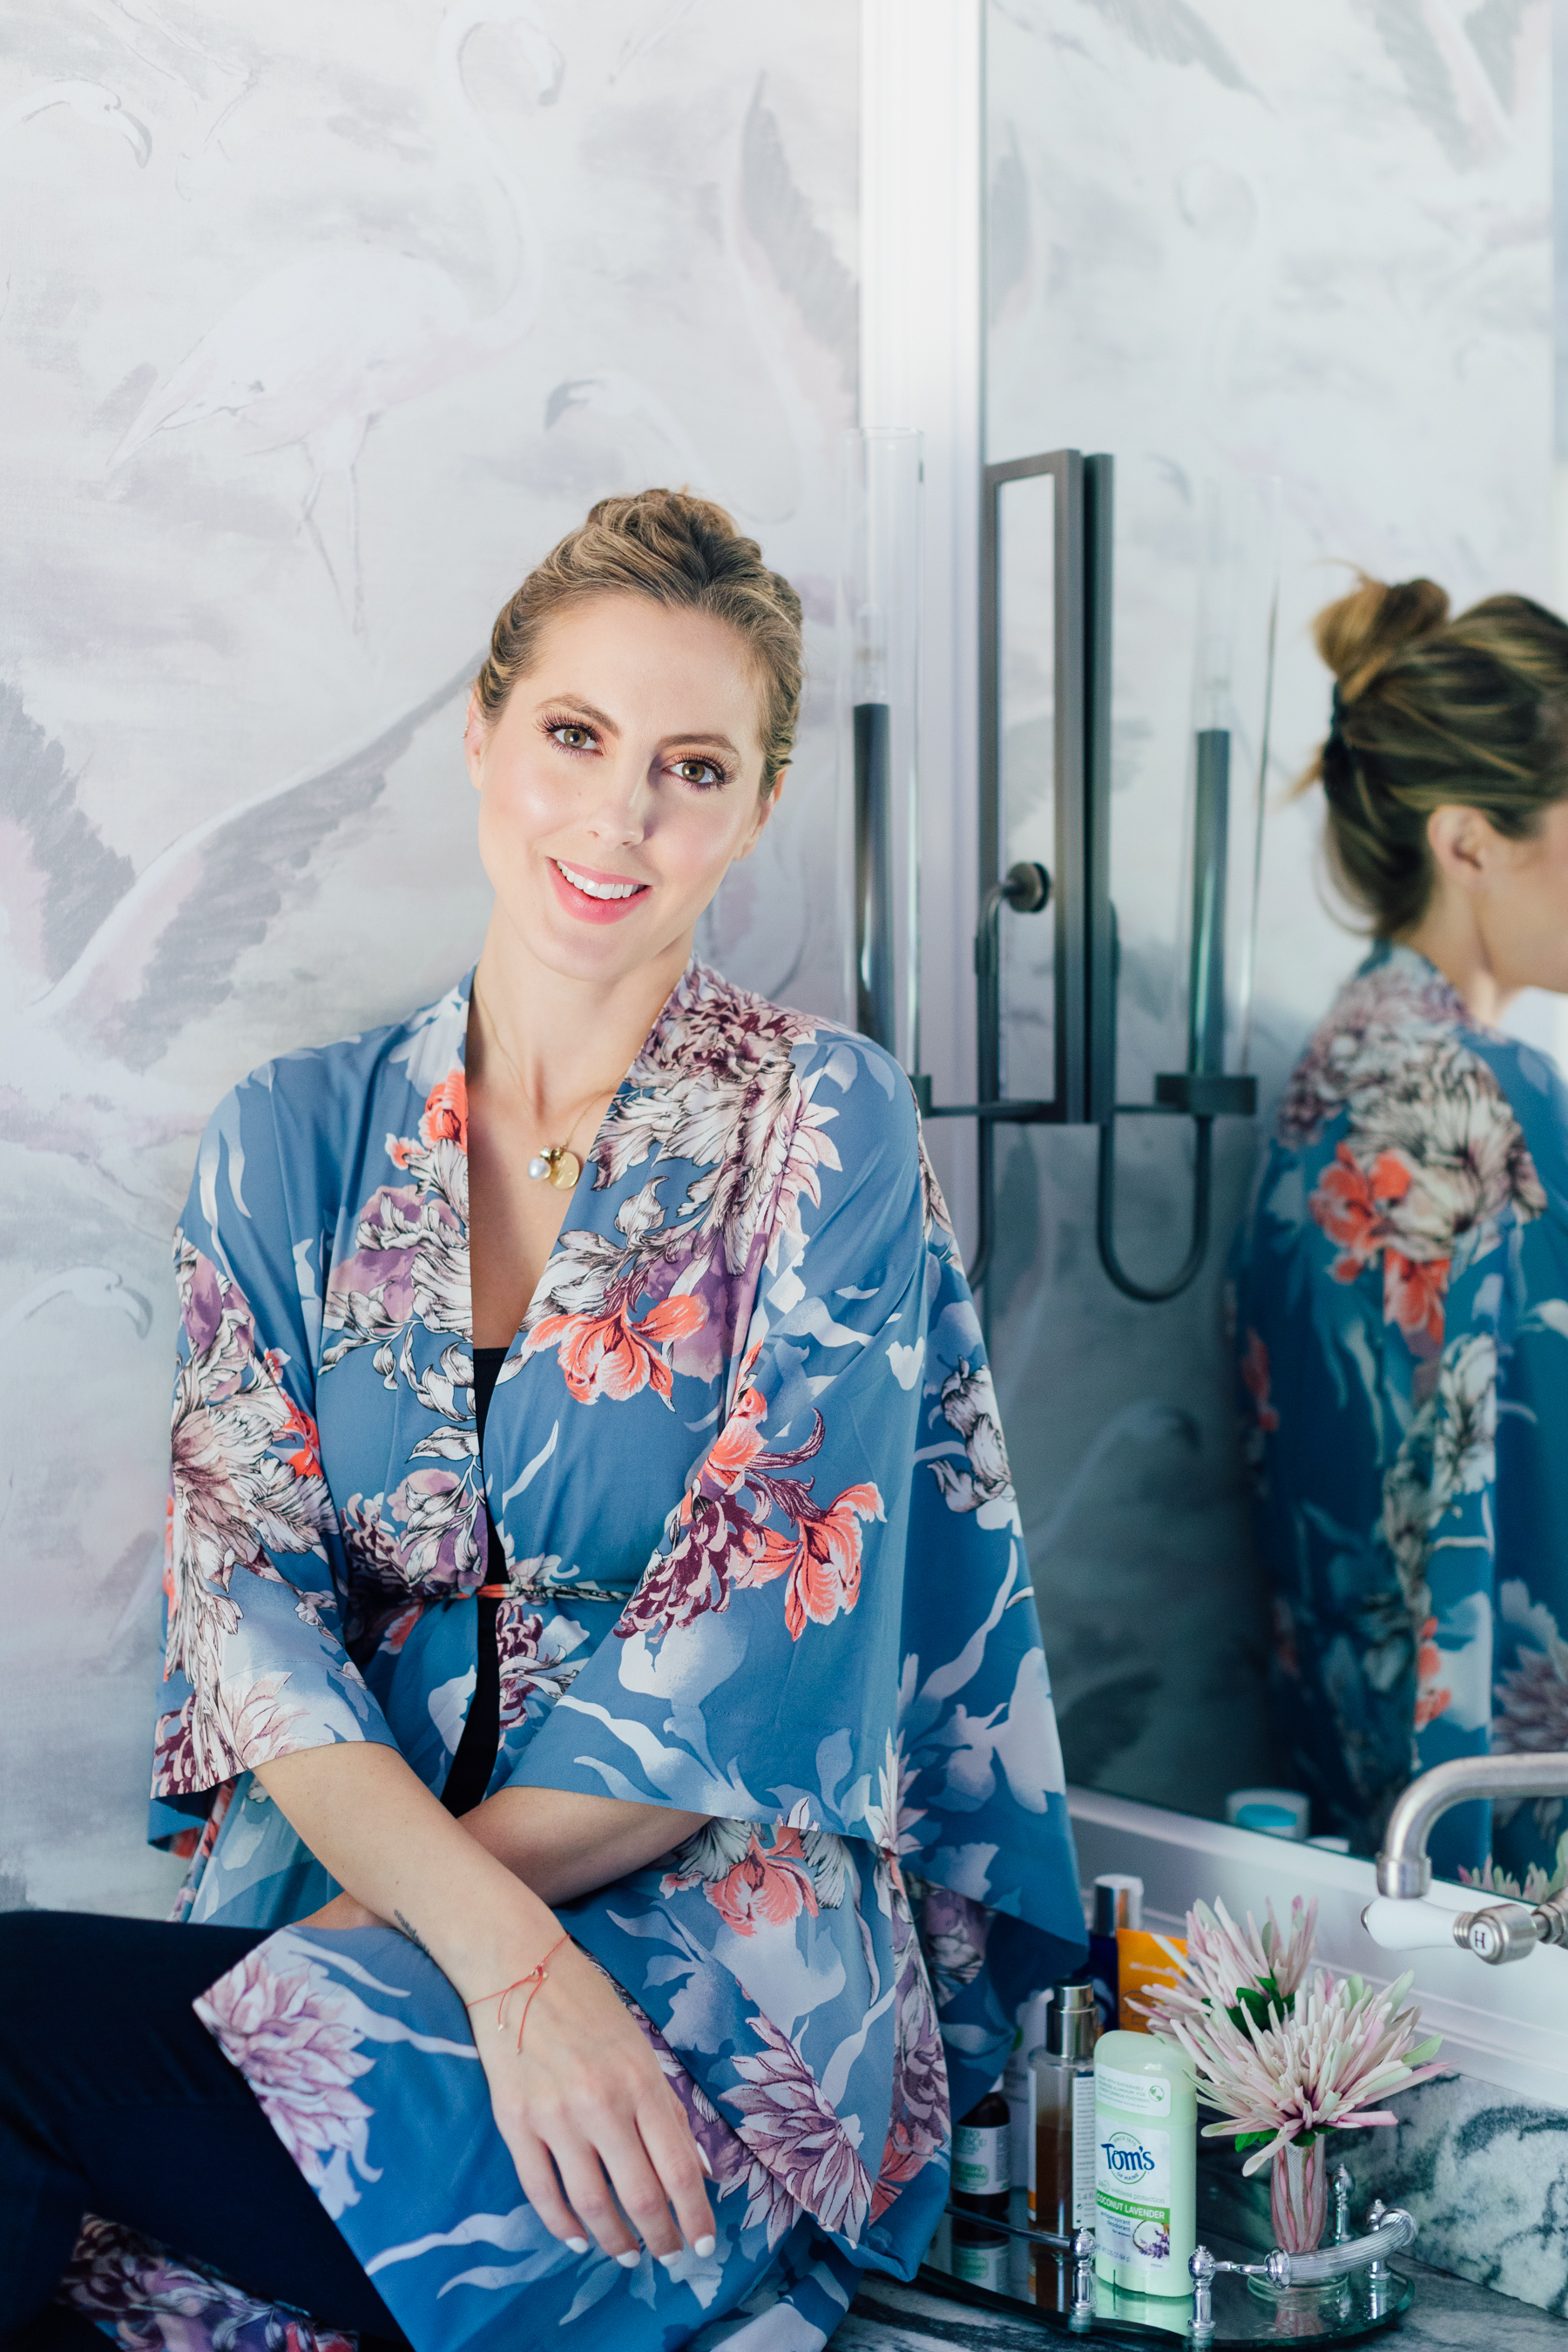 Eva Amurri Martino shares her updated pregnancy safe beauty routine